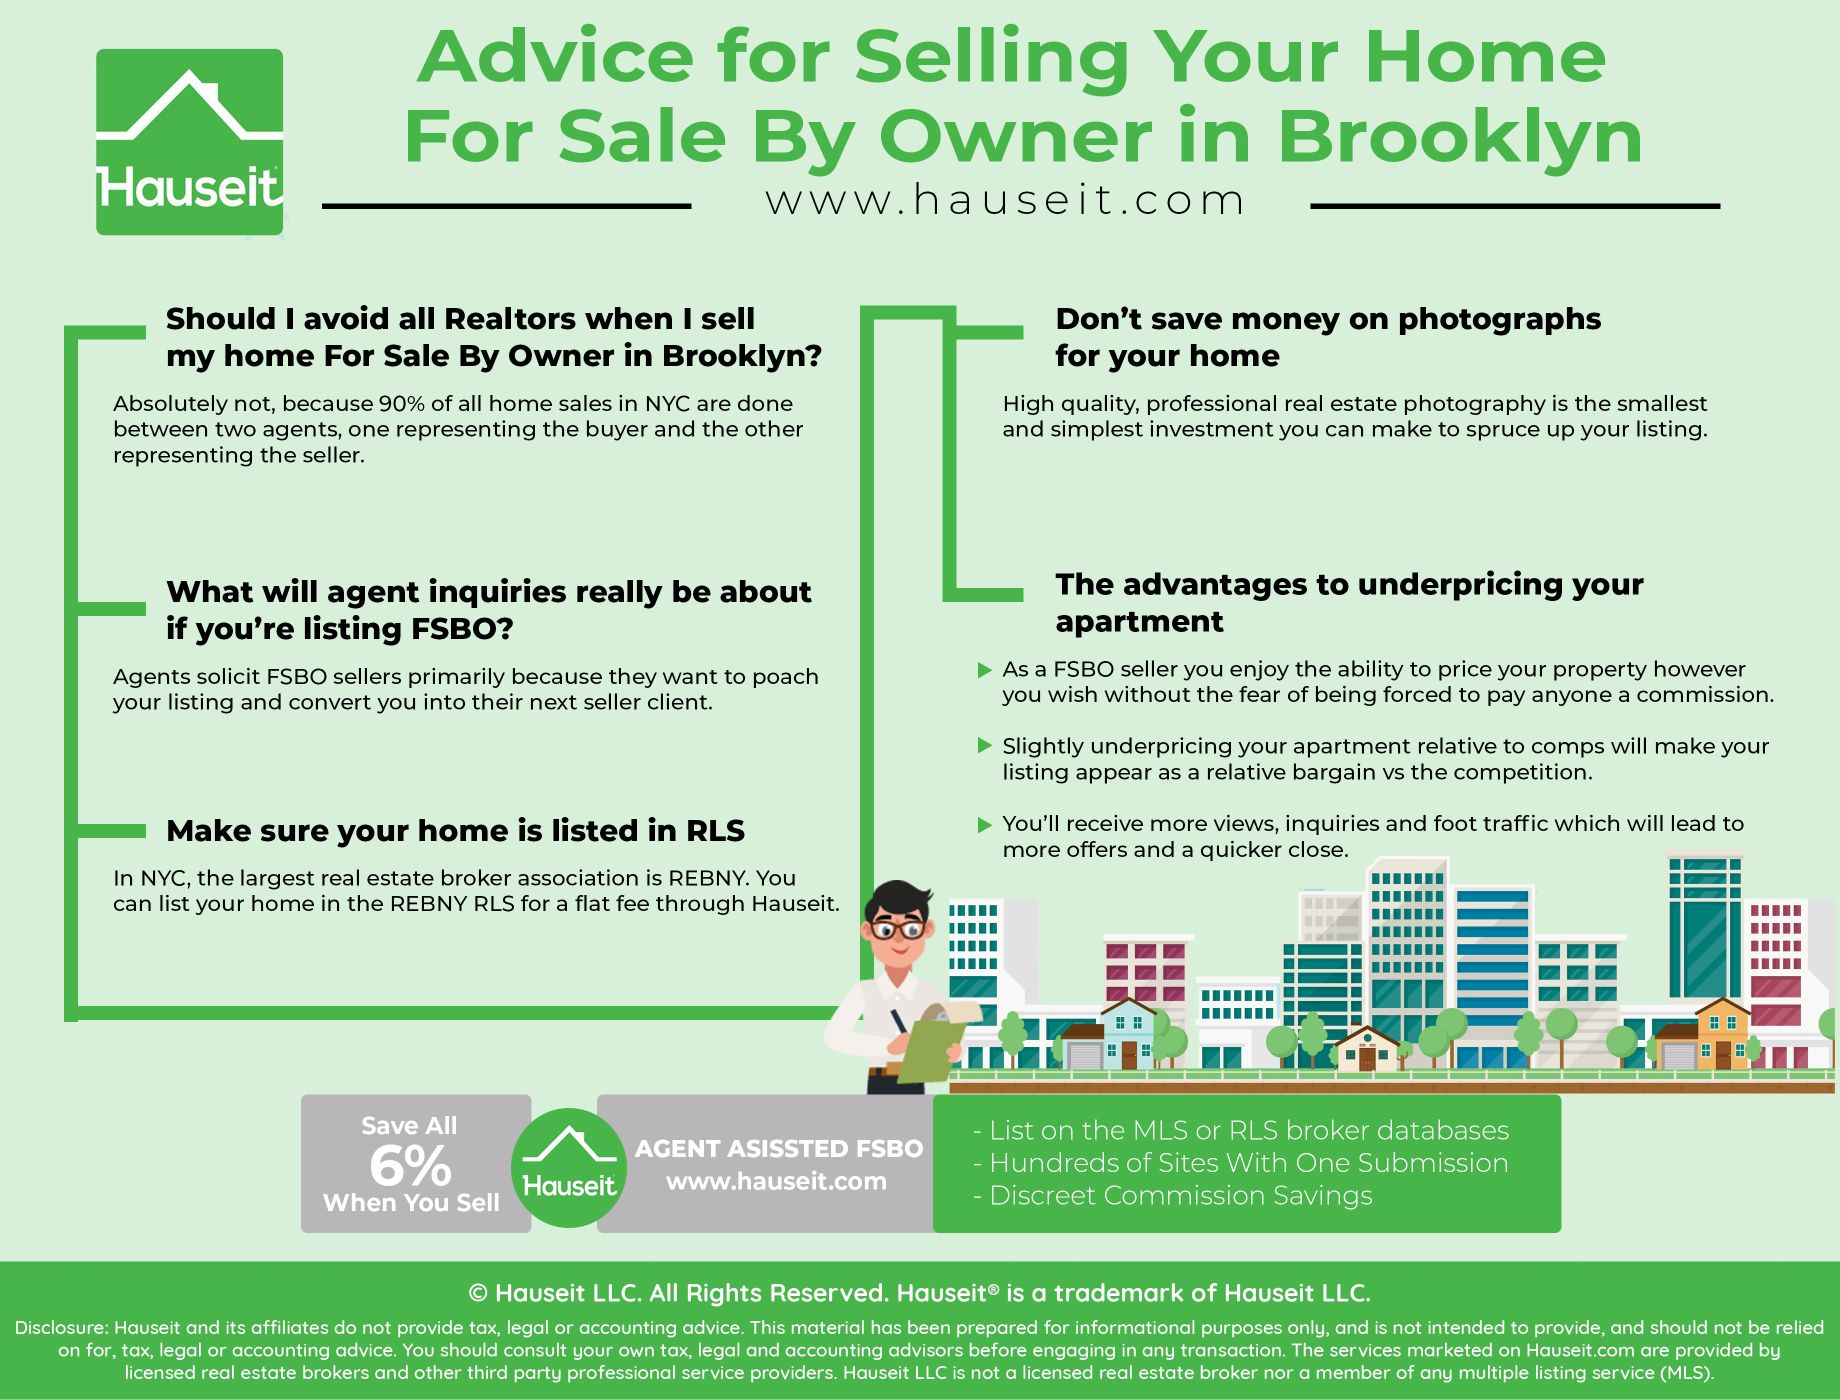 Looking for advice before you decide to sell your most valuable asset For Sale By Owner in Brooklyn? Make sure you understand the market in Brooklyn first.